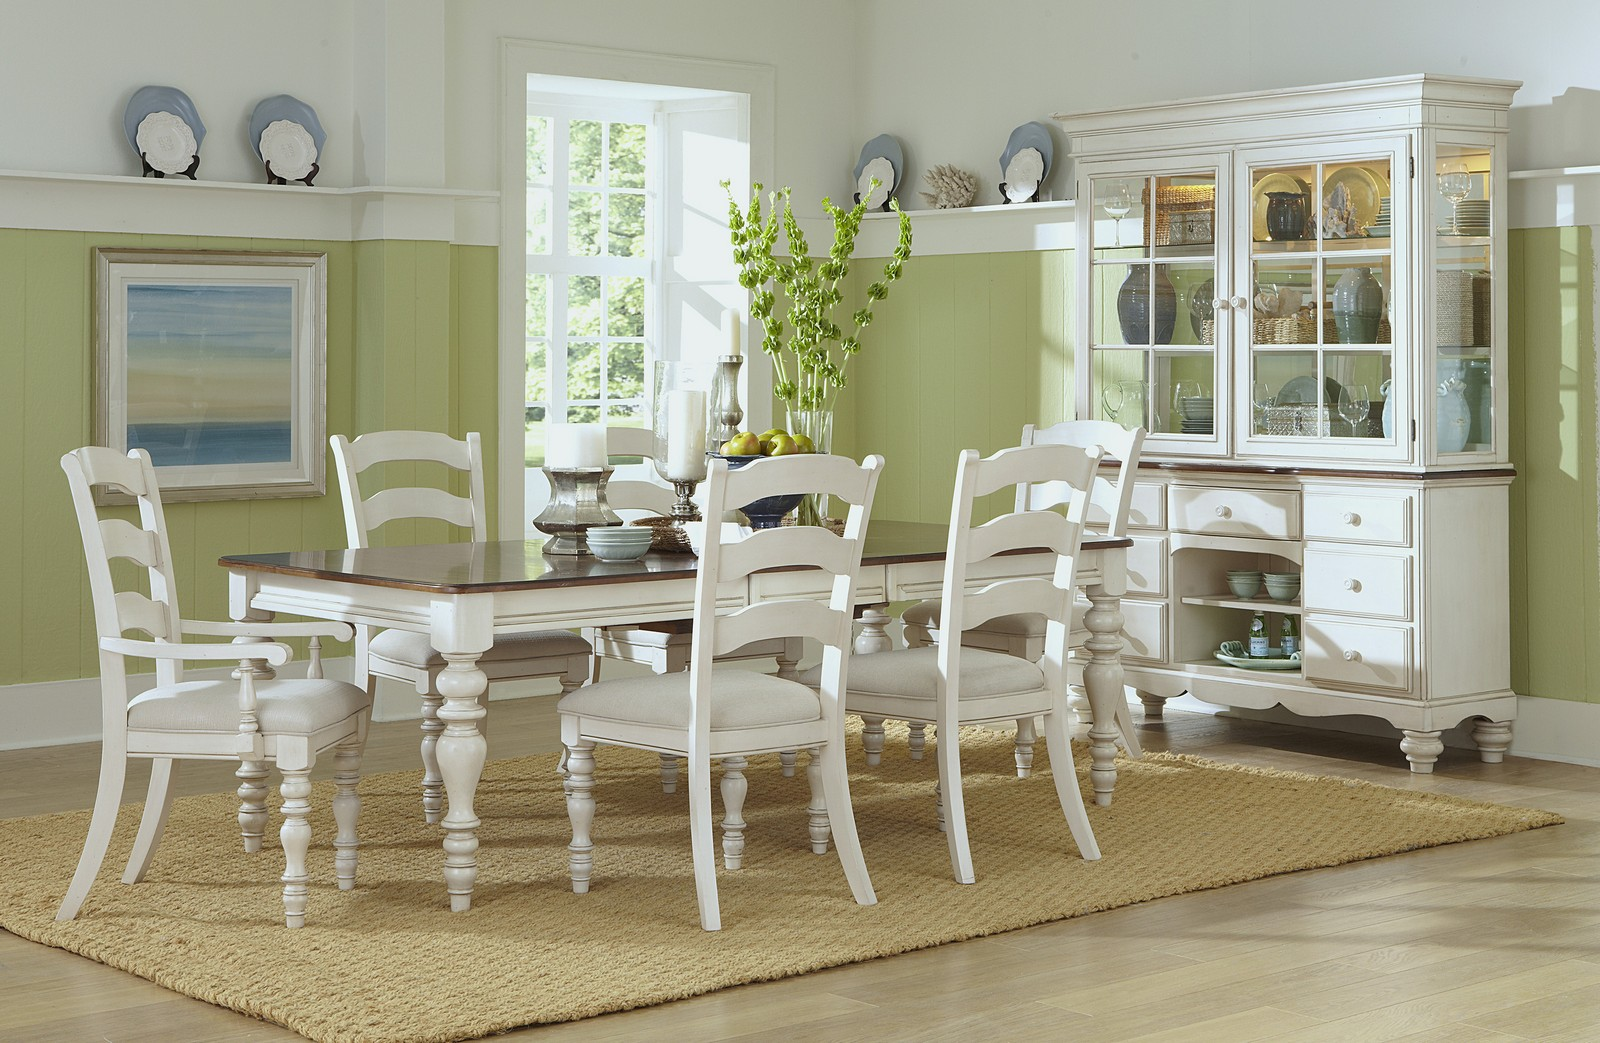 Hillsdale Pine Island 7 Pc Dining Set With Ladder Back Chairs Old White 5265dtbrcl7 Hillsdalefurnituremart Com